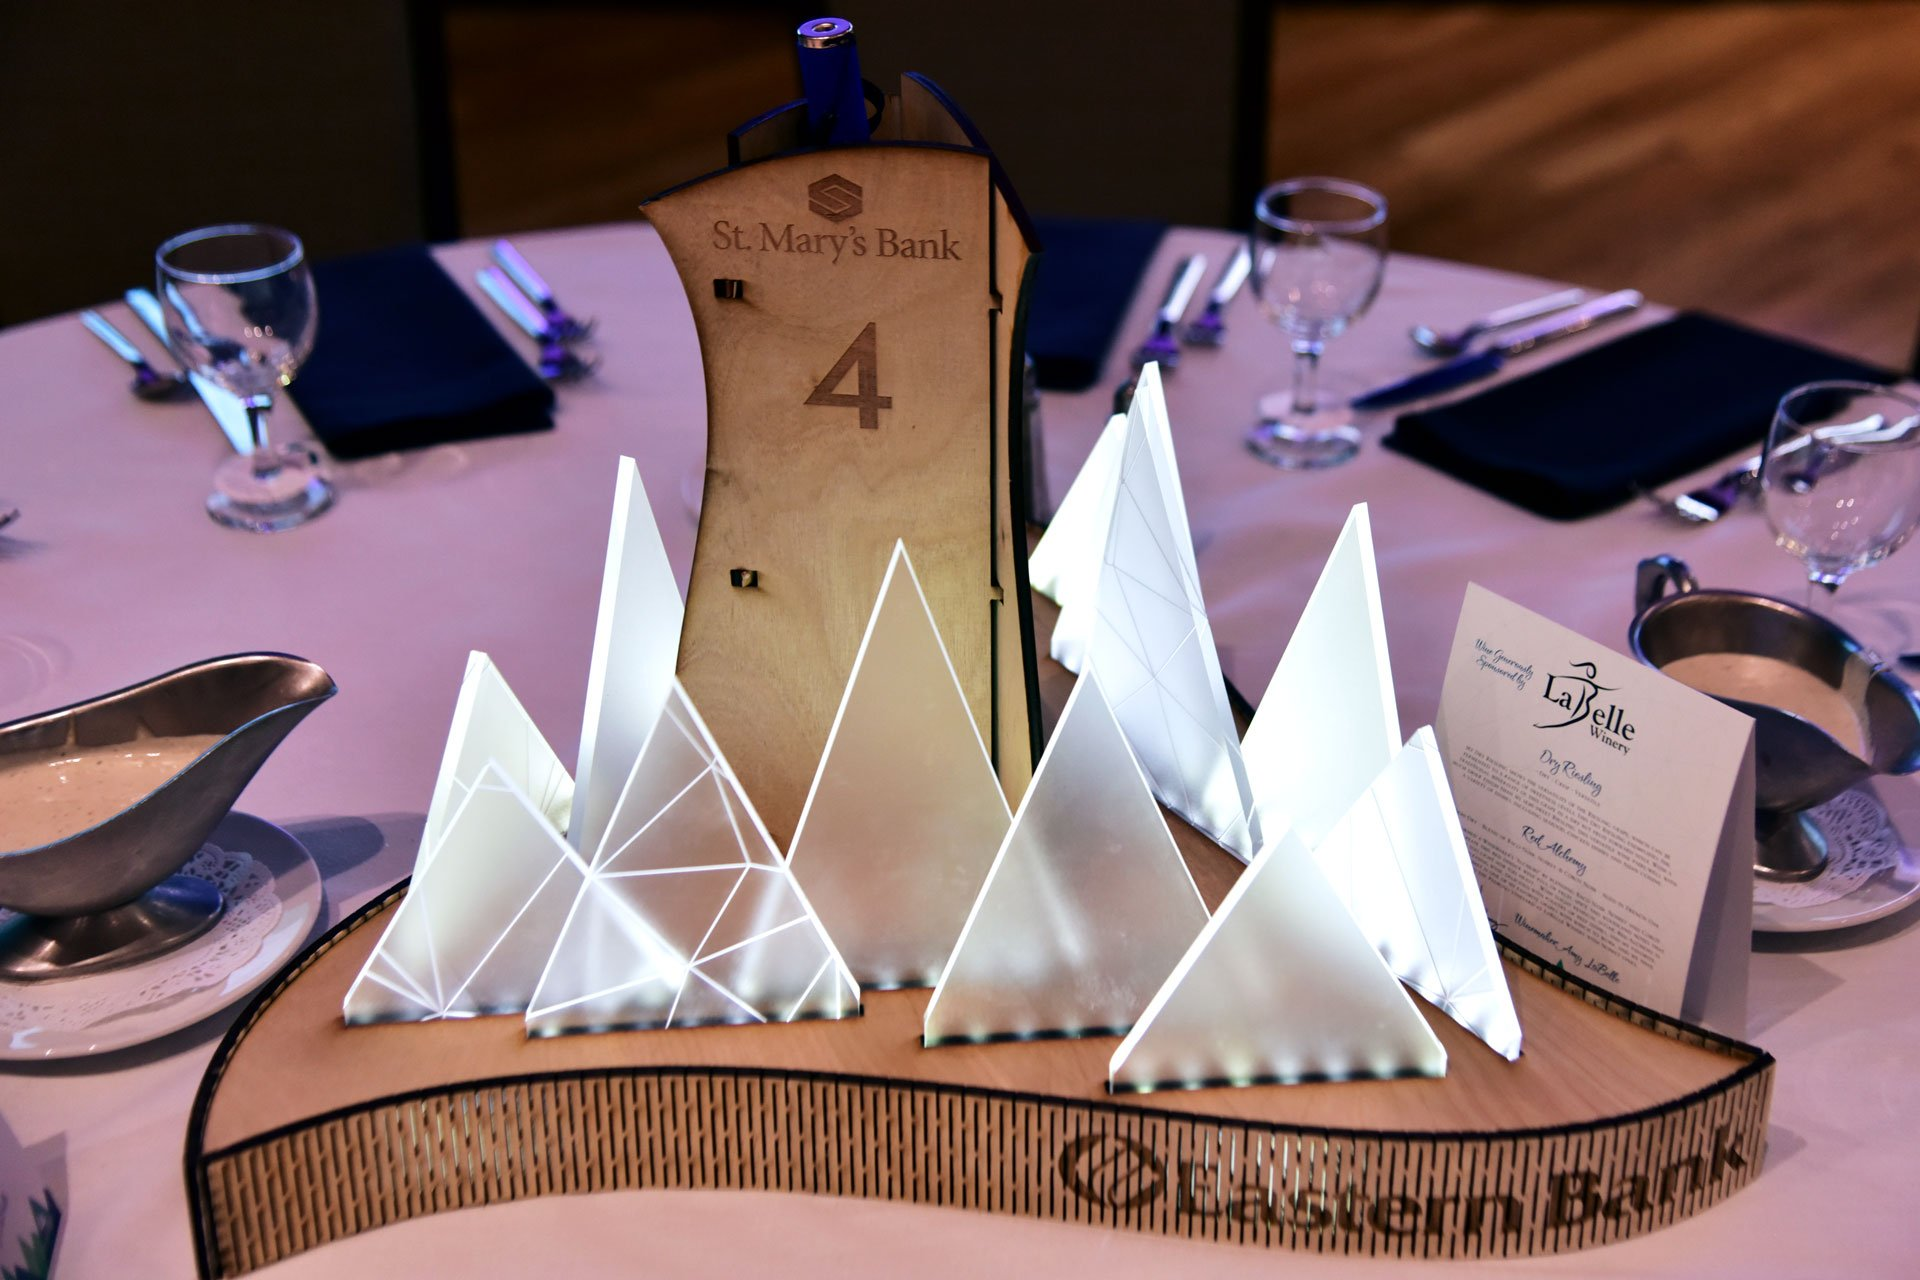 Greater Manchester Chamber of Commerce Citizen of the Year Event Table Set up Centerpiece close up 2018